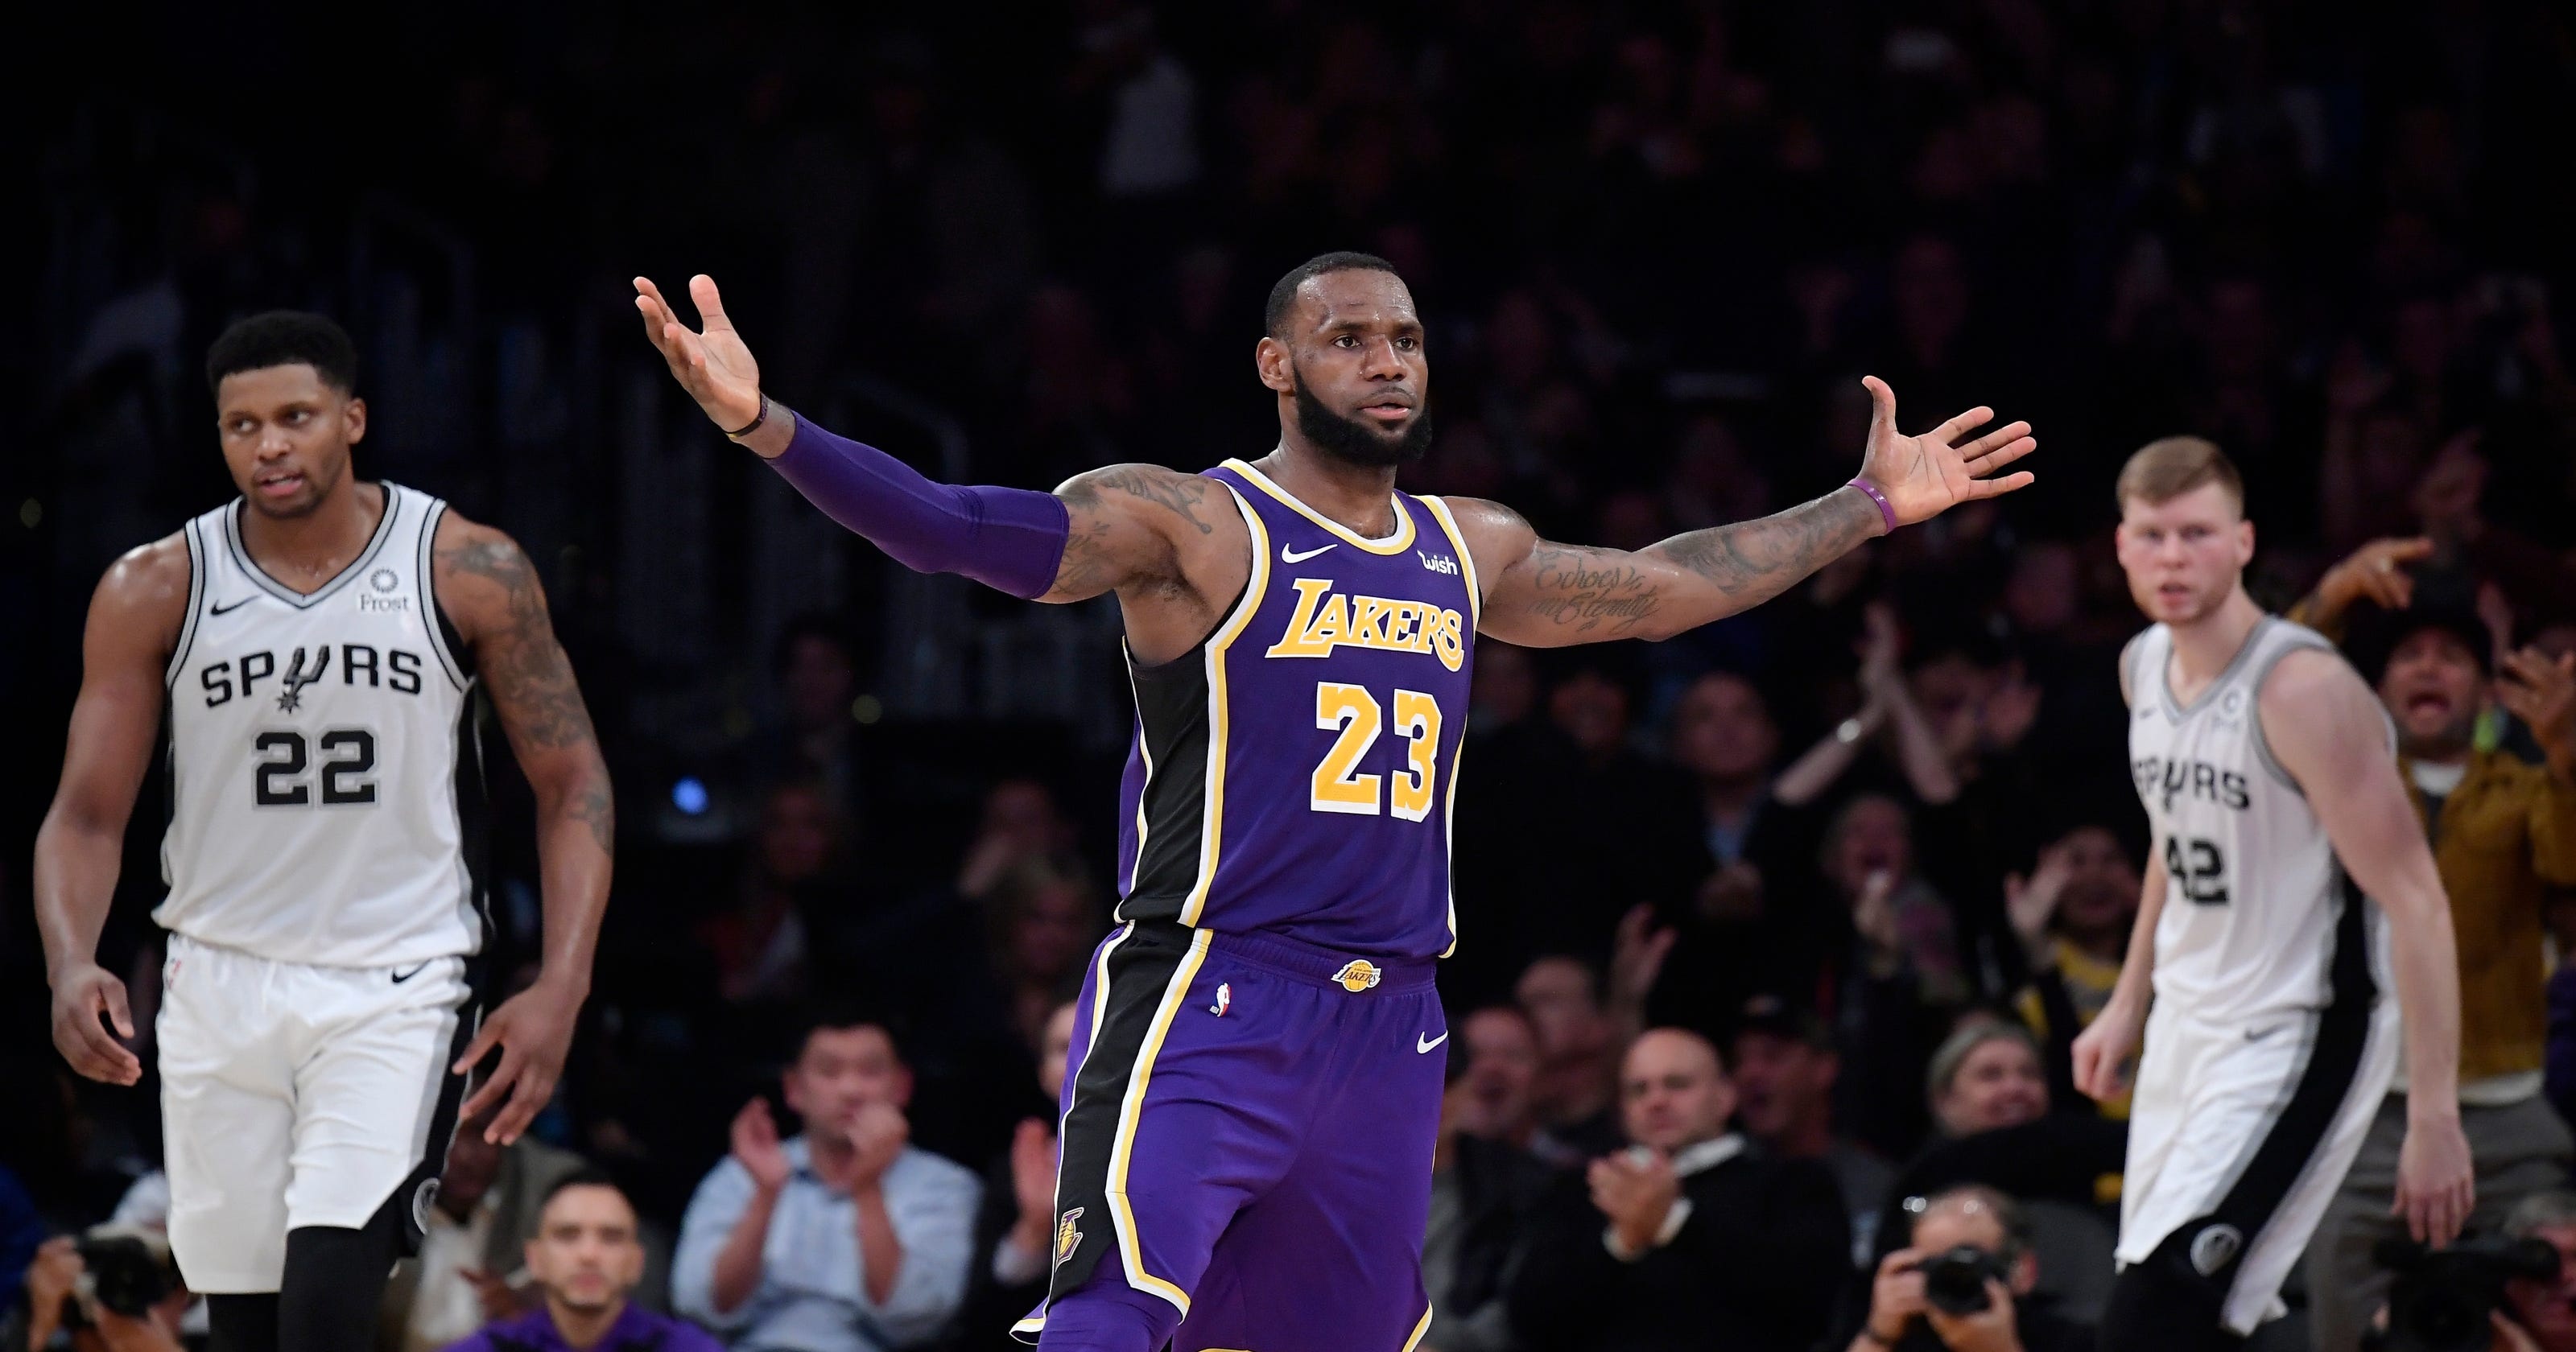 c361c7c52cb7 LeBron James has a few more rungs to climb before he is  The Greatest